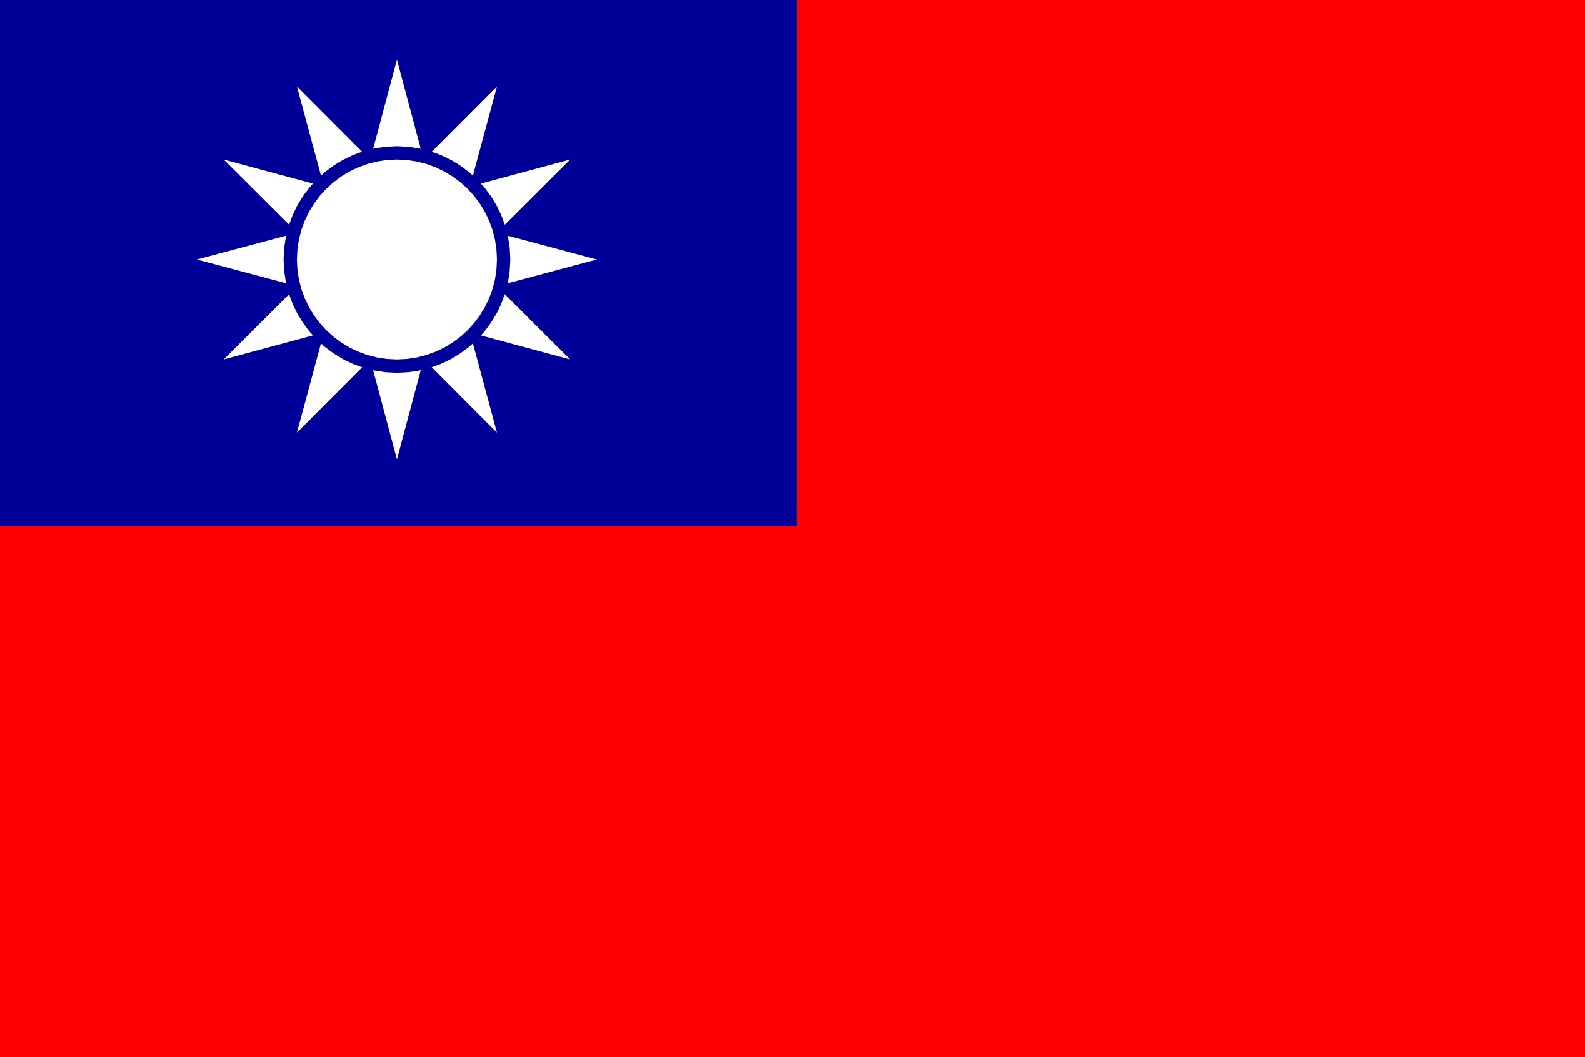 Good call, Trump: It's time America recognized Taiwan as a sovereign nation (and rejected the bullying of communist China)